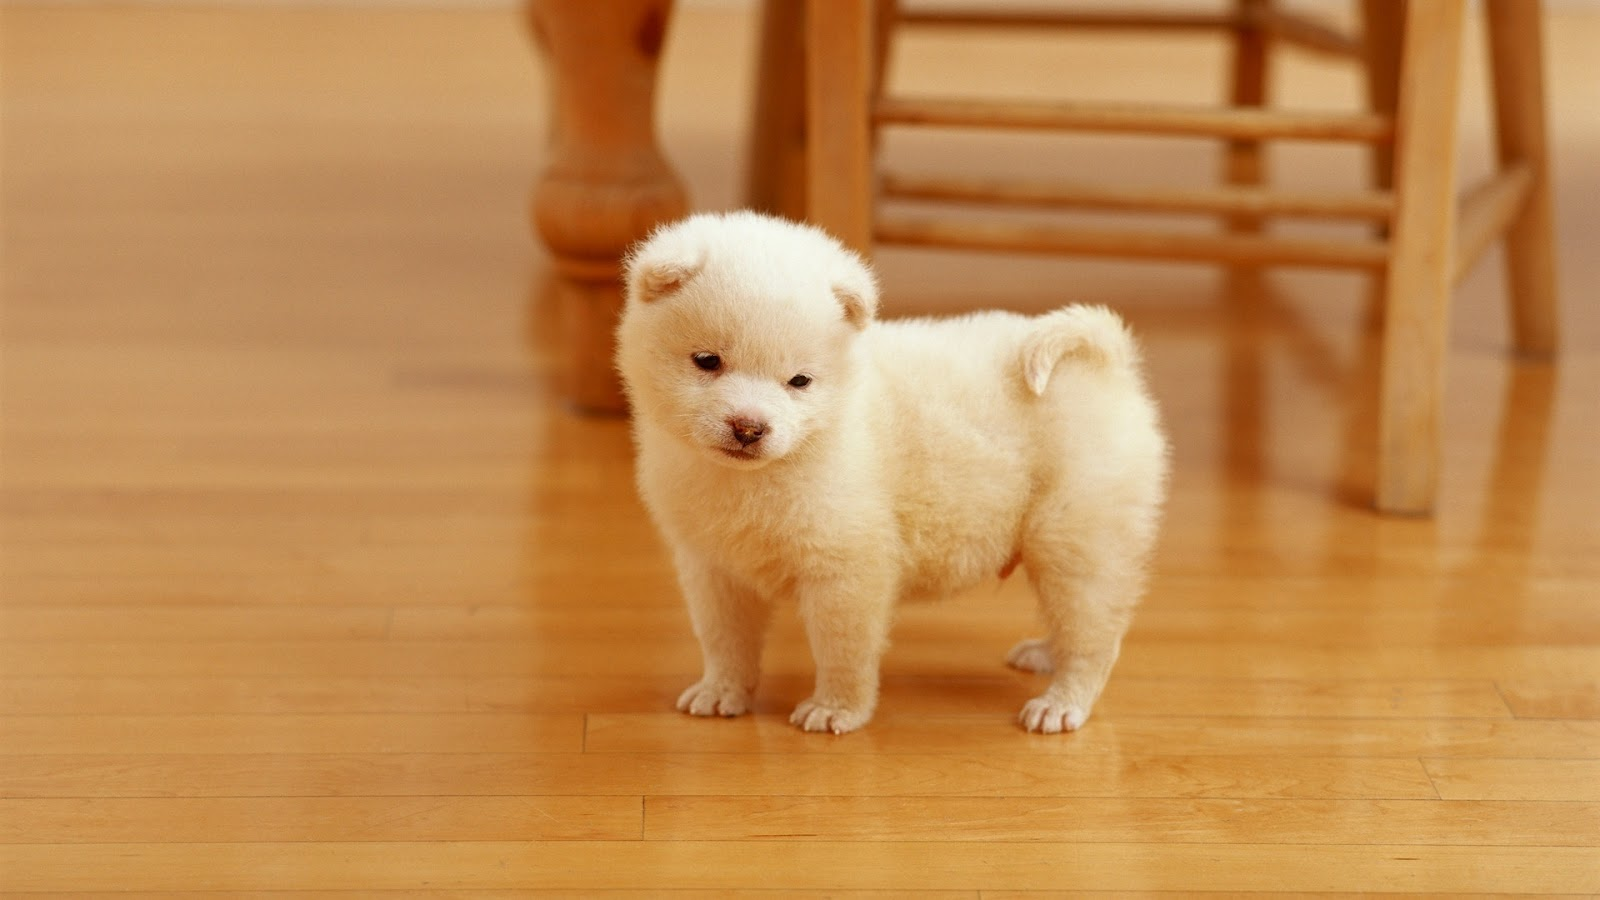 Free Download Cute White Puppy Desktop Wallpaper Windows 8 Hd Wallpapers 1600x900 For Your Desktop Mobile Tablet Explore 75 White Dog Wallpaper Black And White Dog Wallpaper